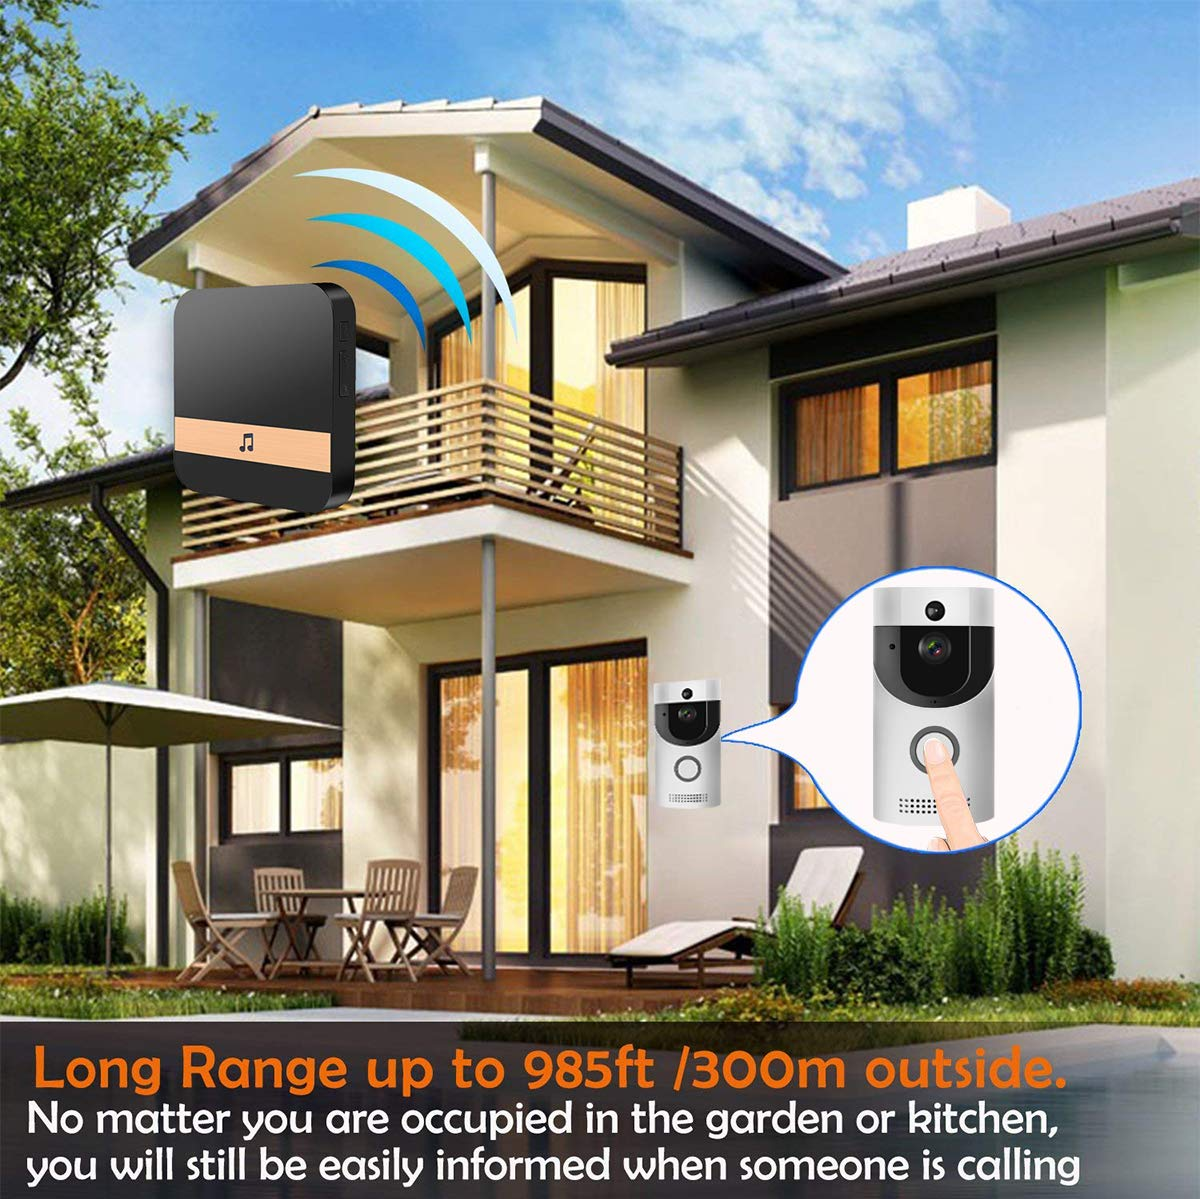 WIFI Video Doorbell, Smart Doorbell HD Security Camera with Chime, Real-Time Two-Way Talk and Video, Night Vision, PIR Motion Detection, ultra-slim design and App Control for IOS and An (Silver) by KLORNO (Image #3)